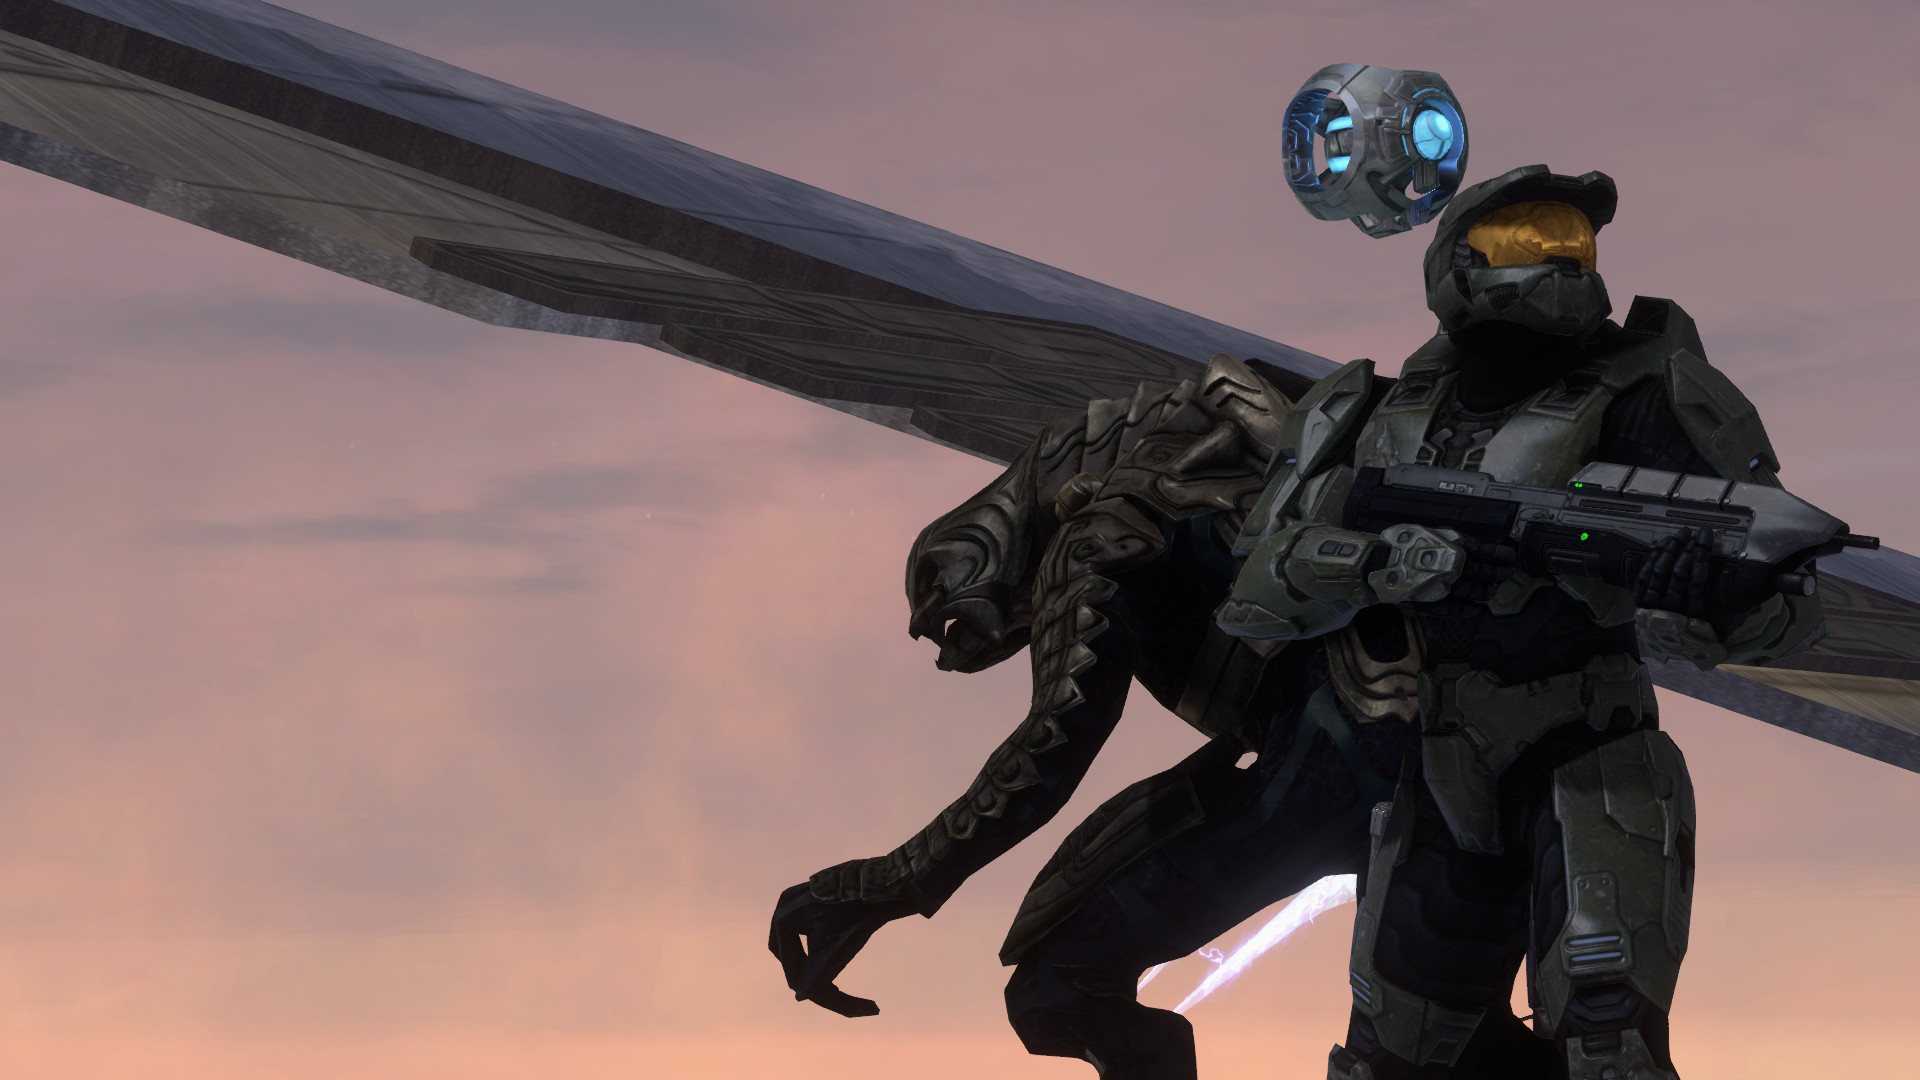 And now, we come to Halo 3…